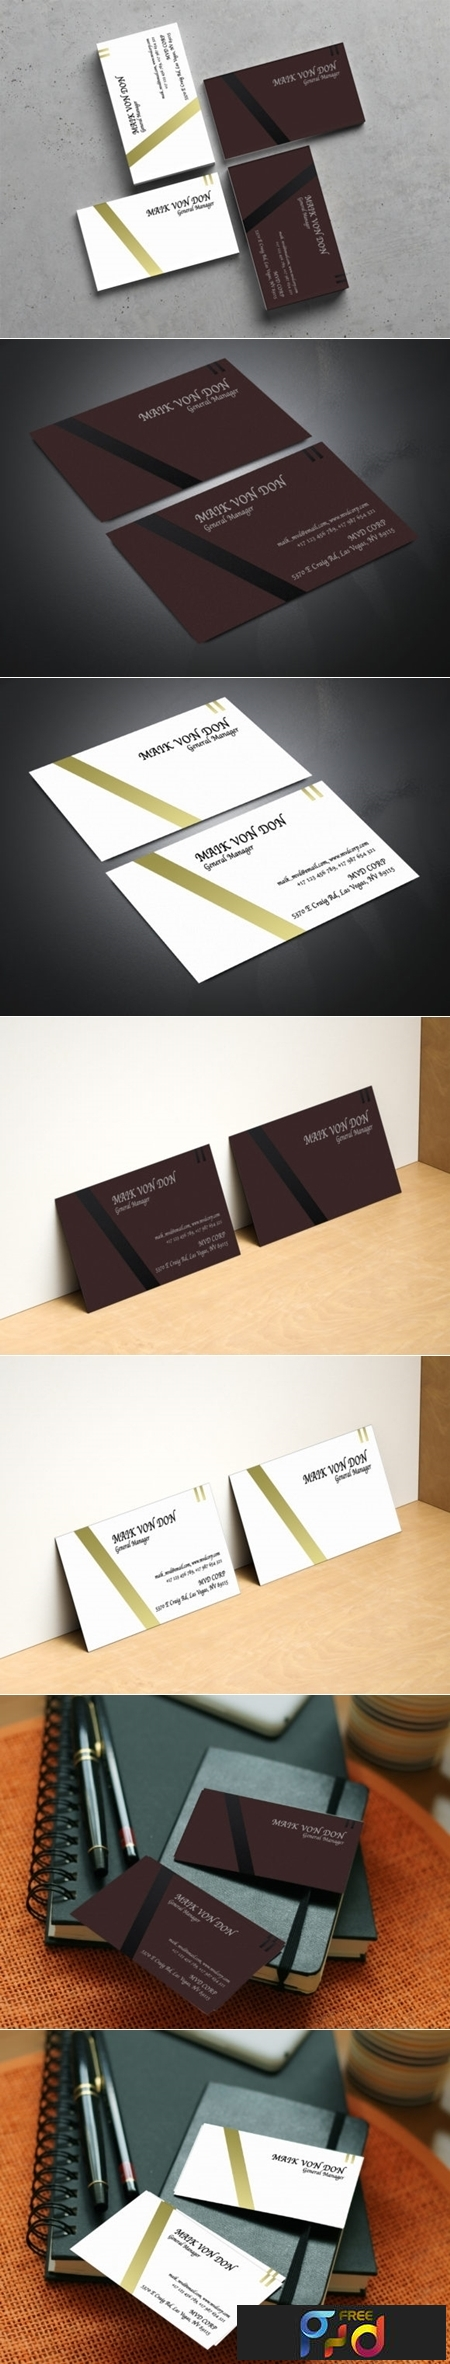 Business Card 959785 1